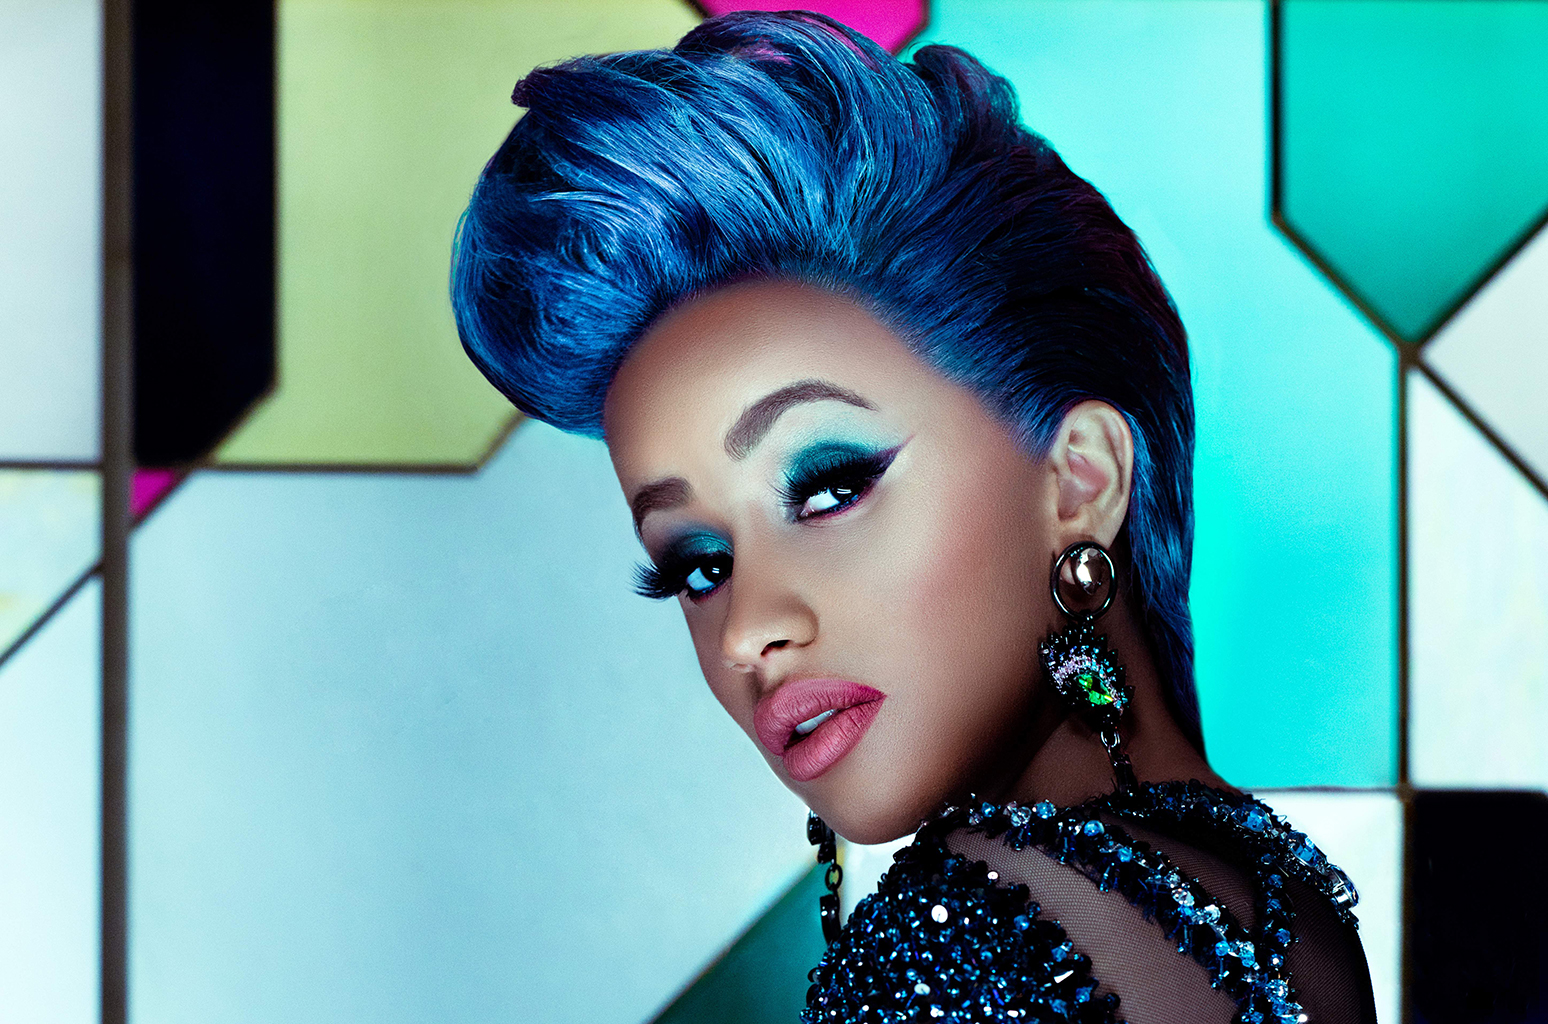 Cardi B Files Trademark for 'Okurrr' Catchphrase